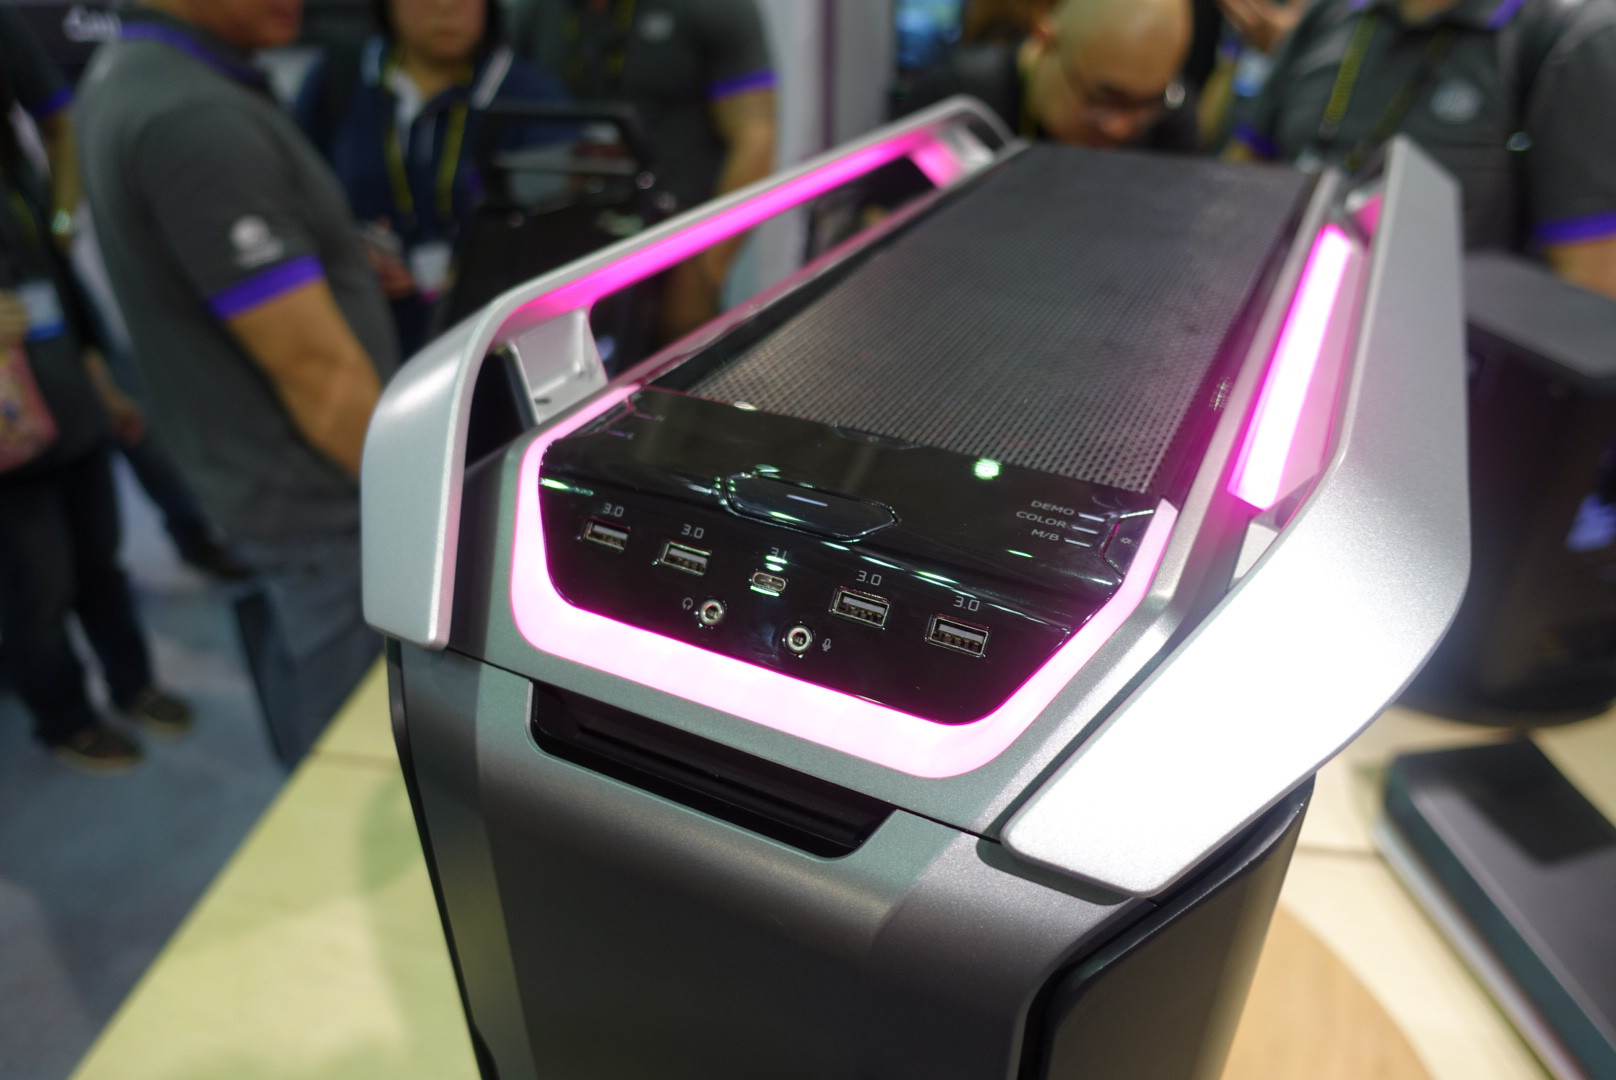 Cooler Master Cosmos 3 Good The Power Supply Shroud Looks Great Dual Curved Tempered Glass Side Panel For C700 Used In Panels Is Slightly